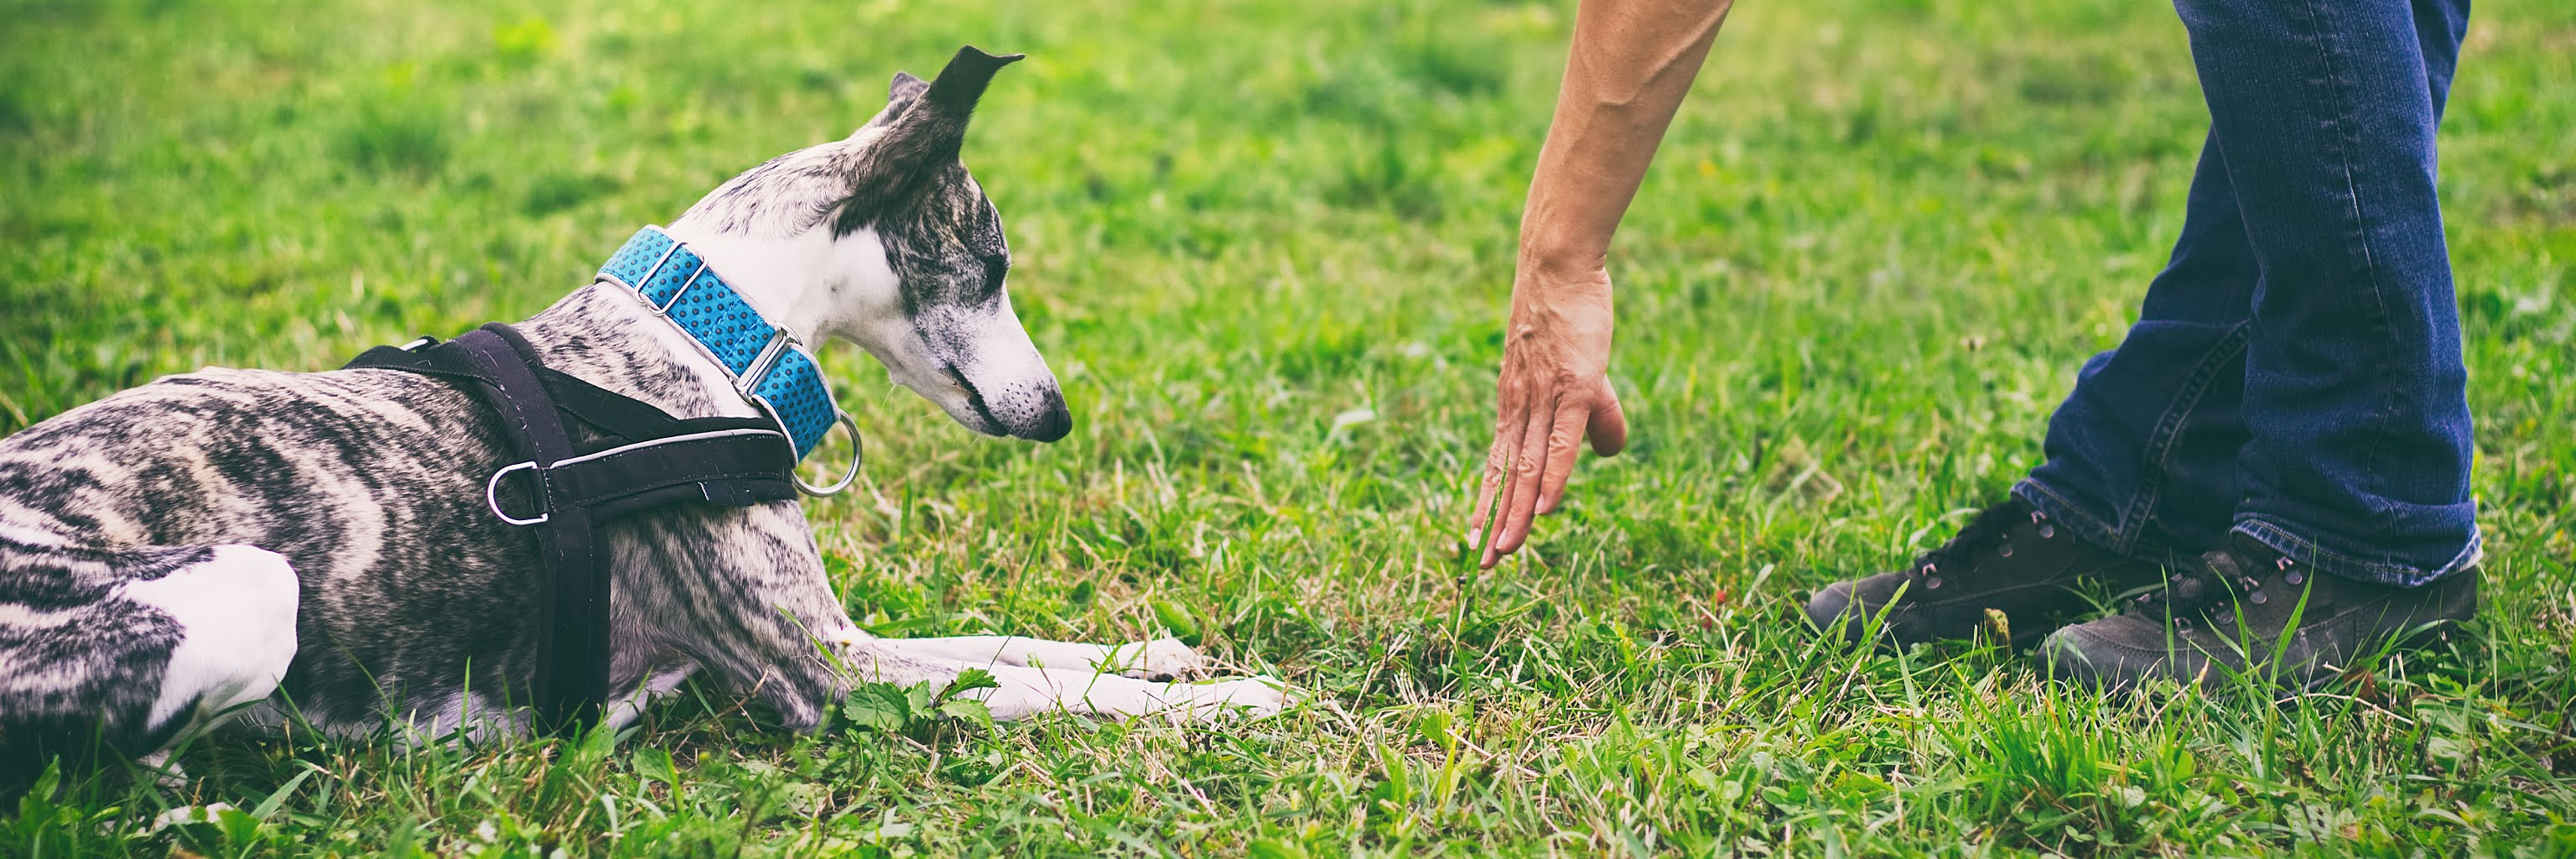 Tips for Boosting Sales During National Train Your Dog Month